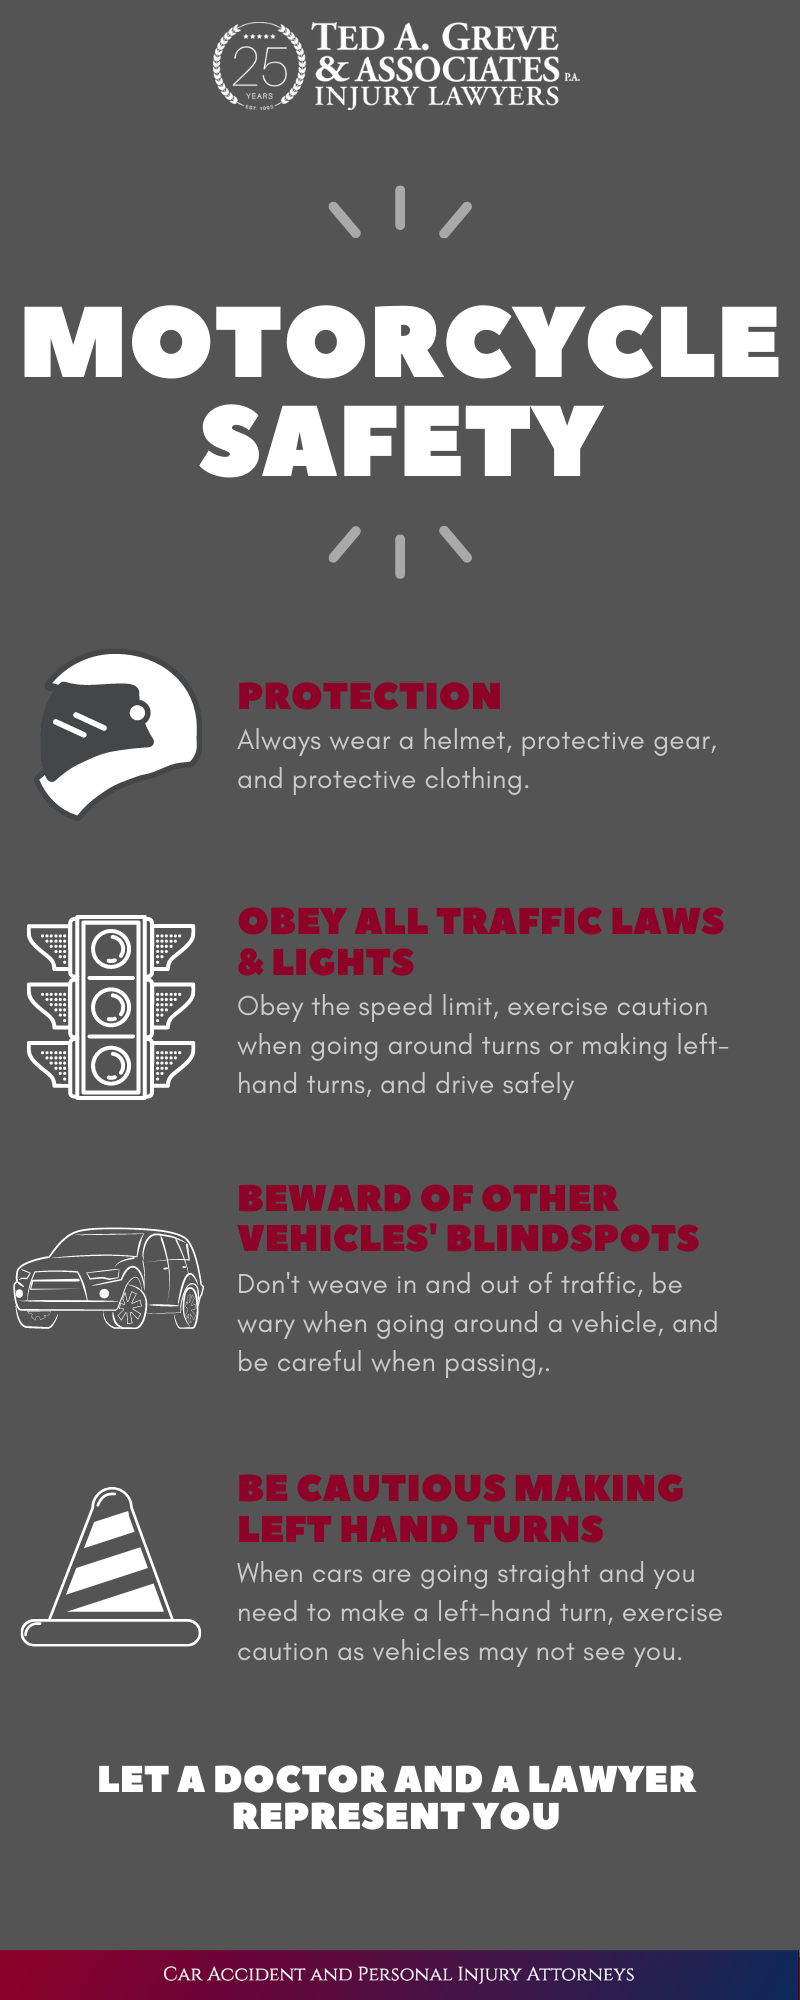 Ted Greve Charlotte Motorcycle Accident Infographic